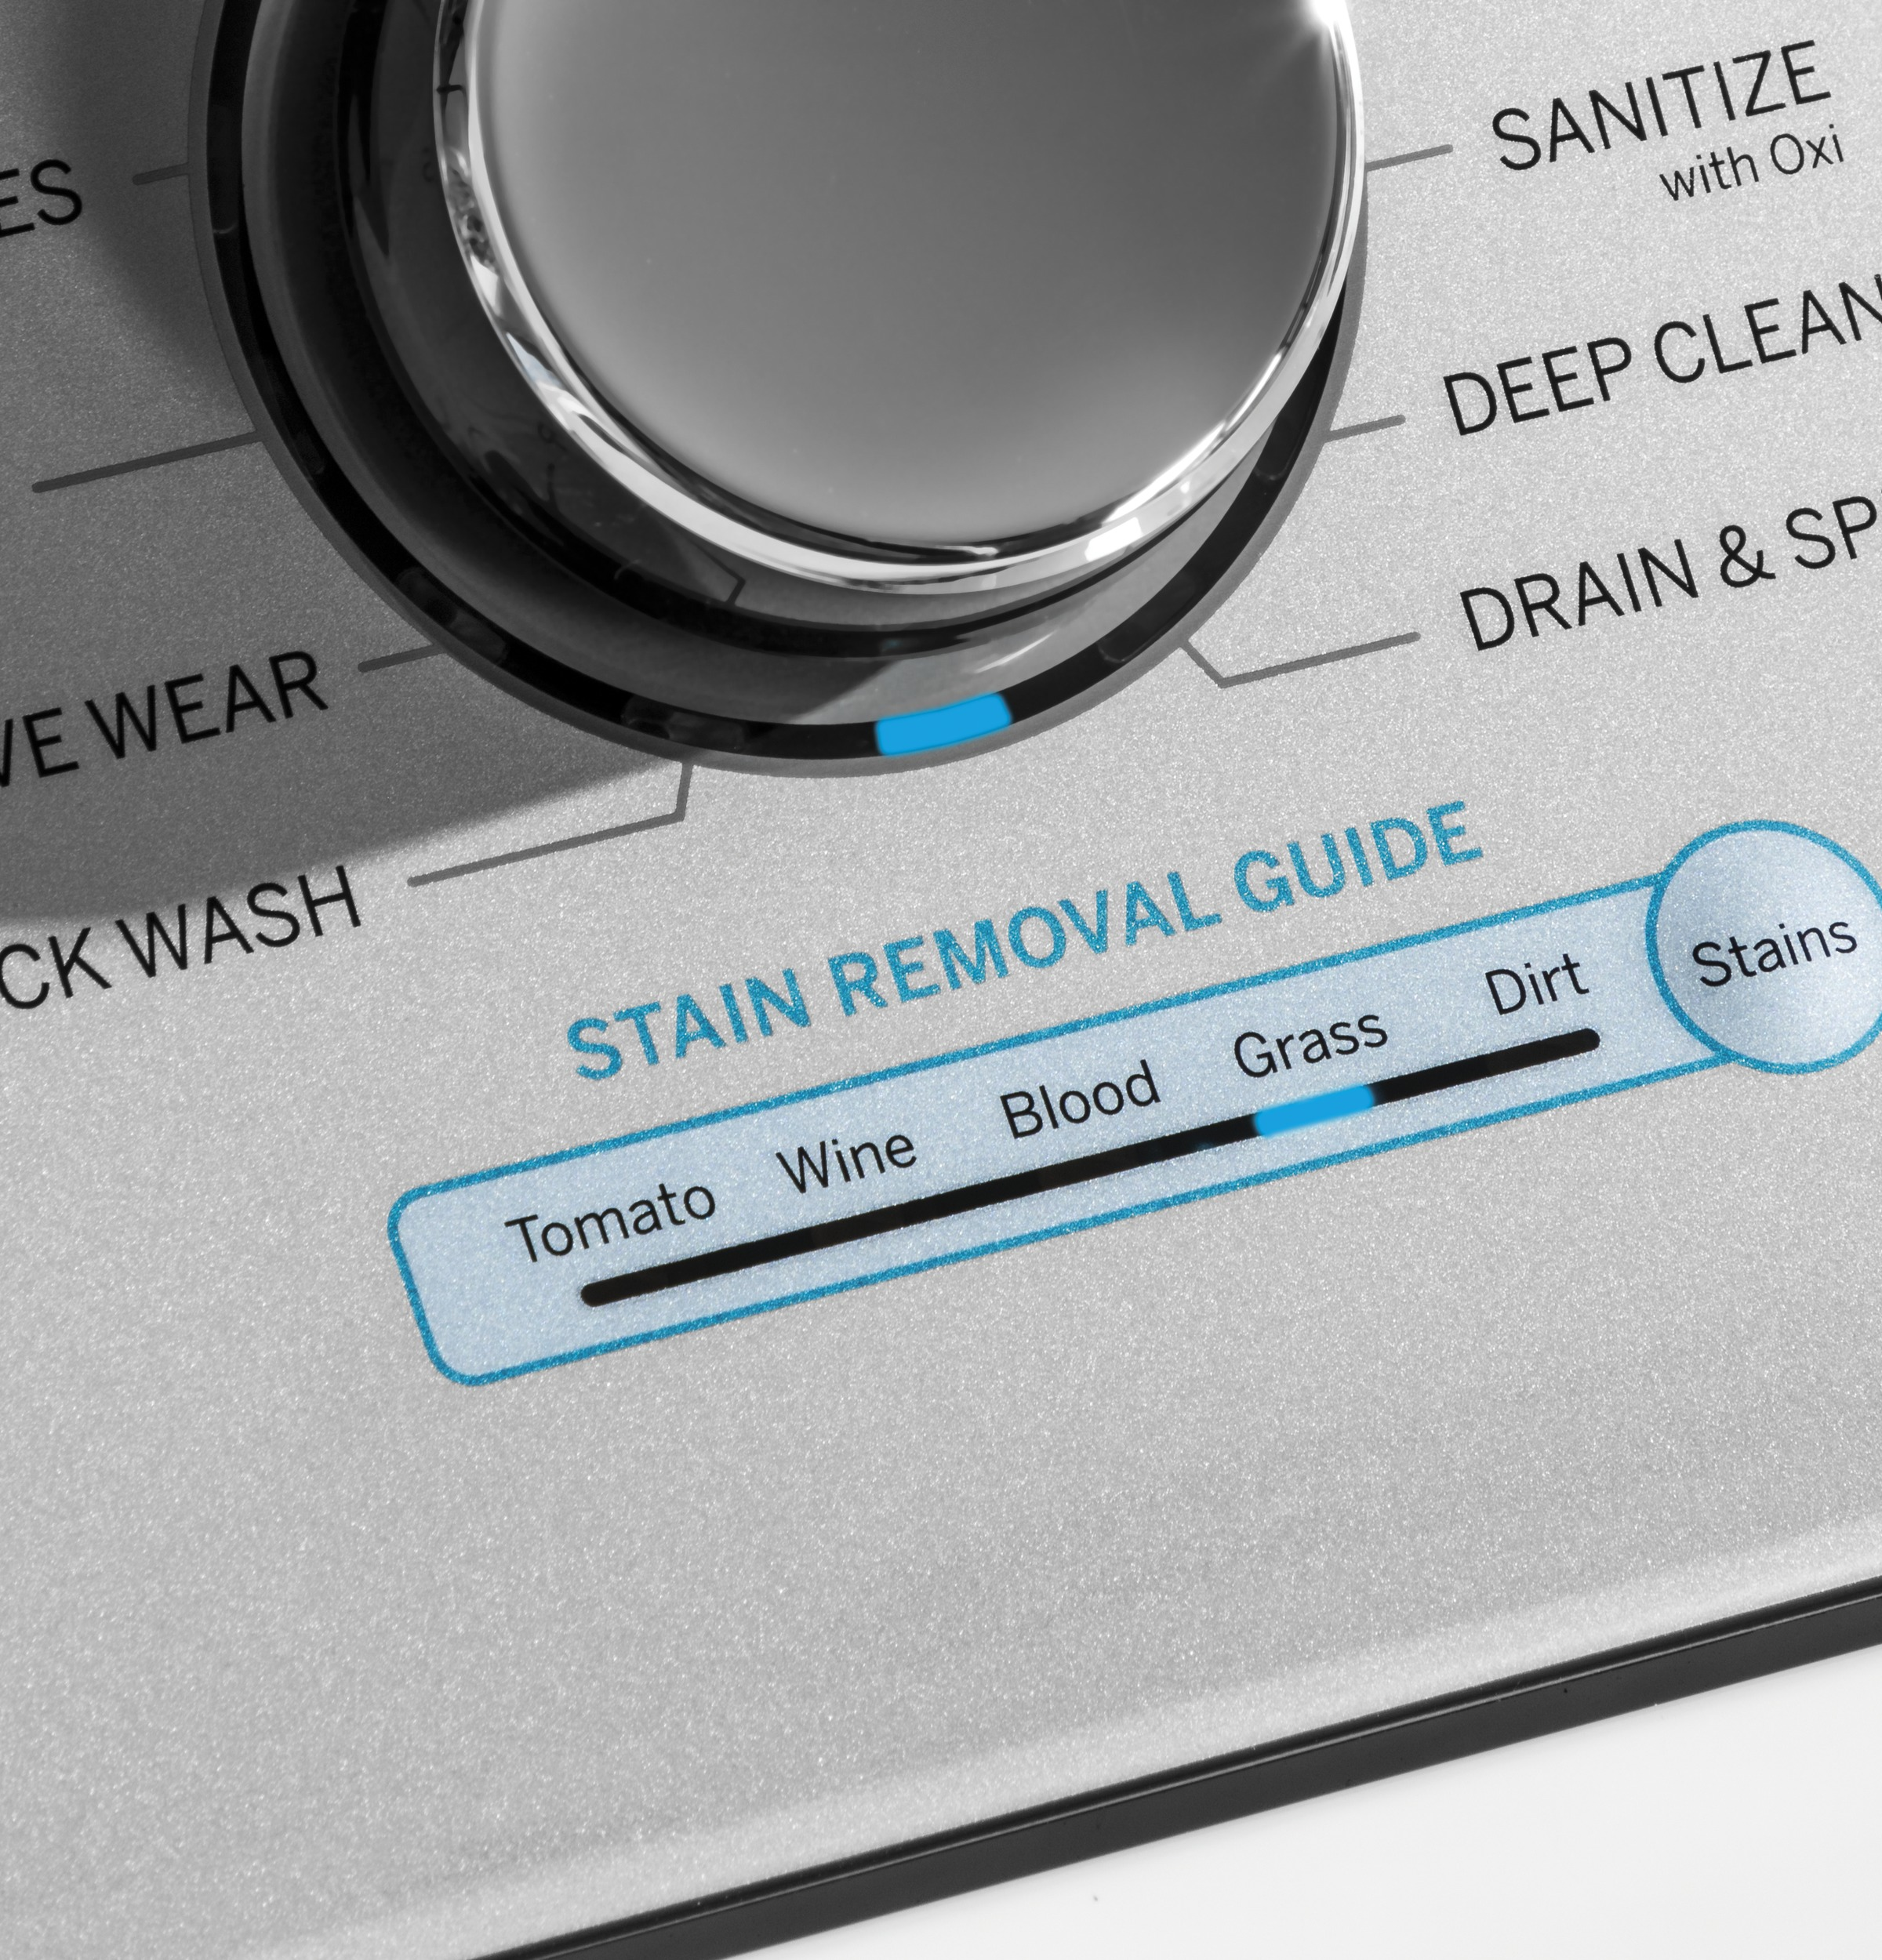 Model: GTW720BSNWS | GE GE® 4.8  cu. ft. Capacity Washer with Sanitize w/Oxi and FlexDispense®